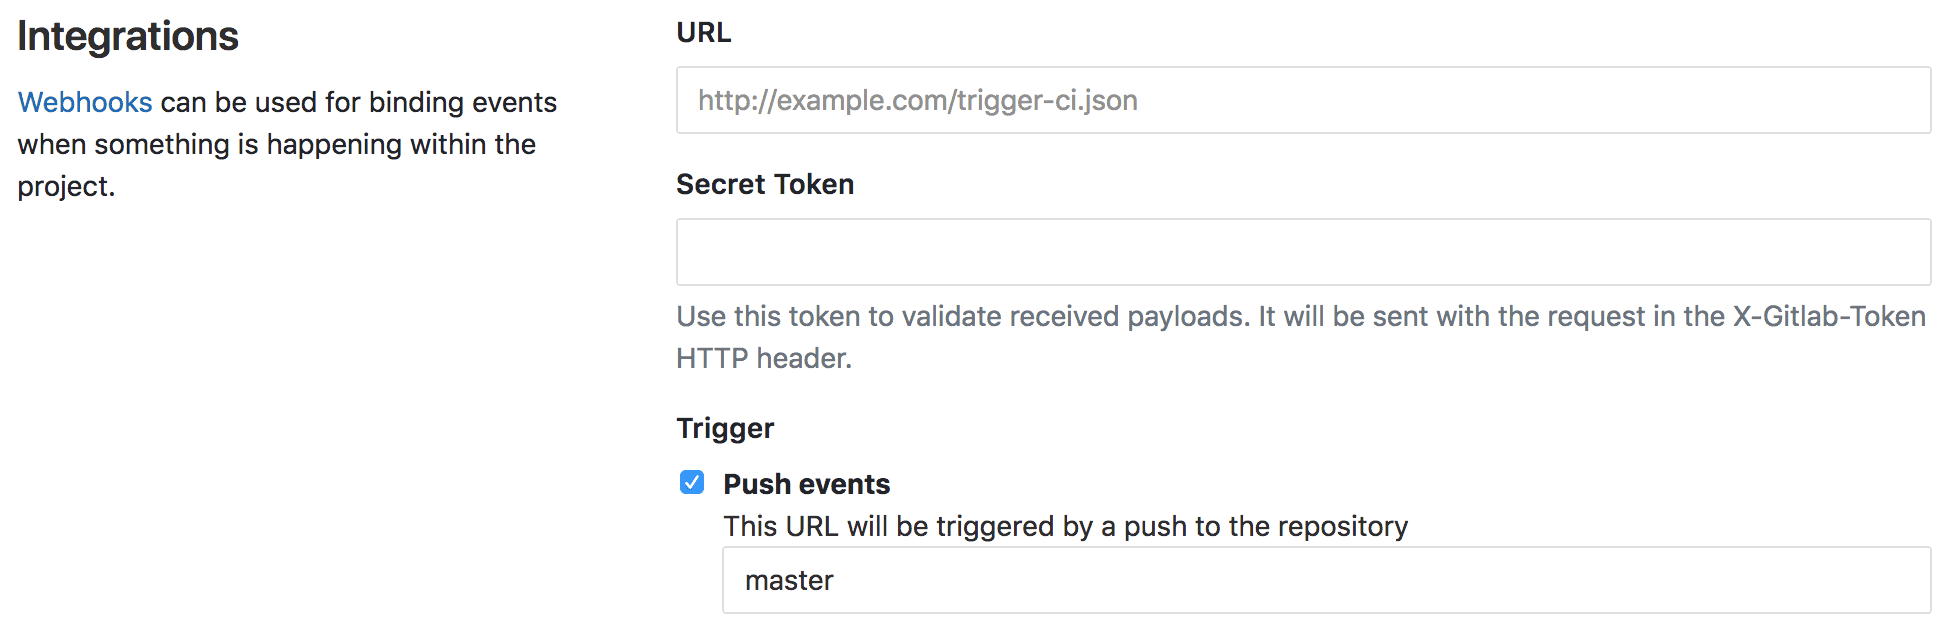 Filter webhook push events by branch